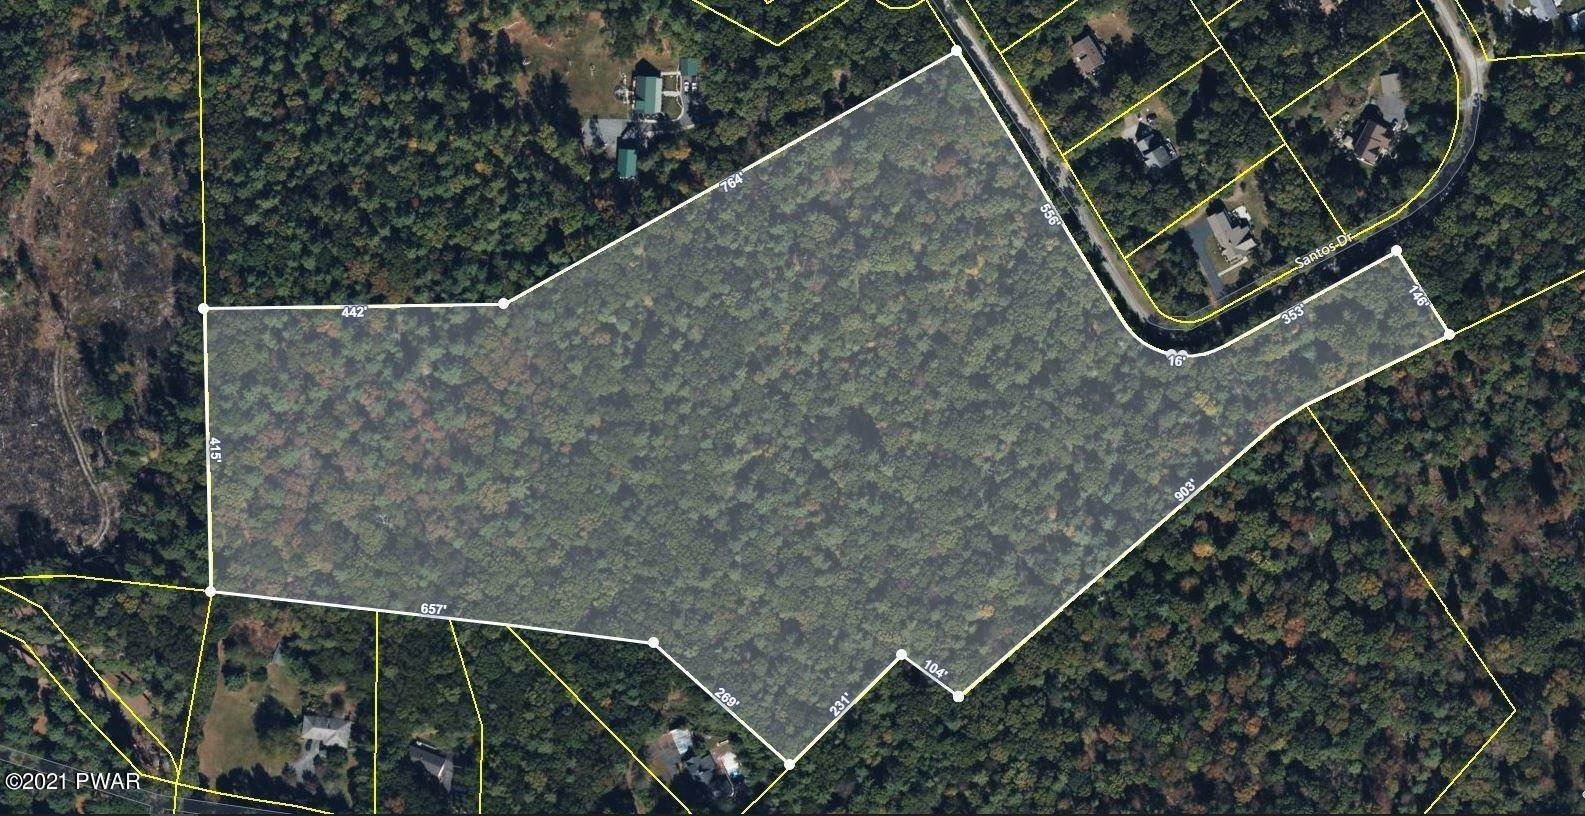 Property for Sale at Santos Dr Milford, Pennsylvania 18337 United States